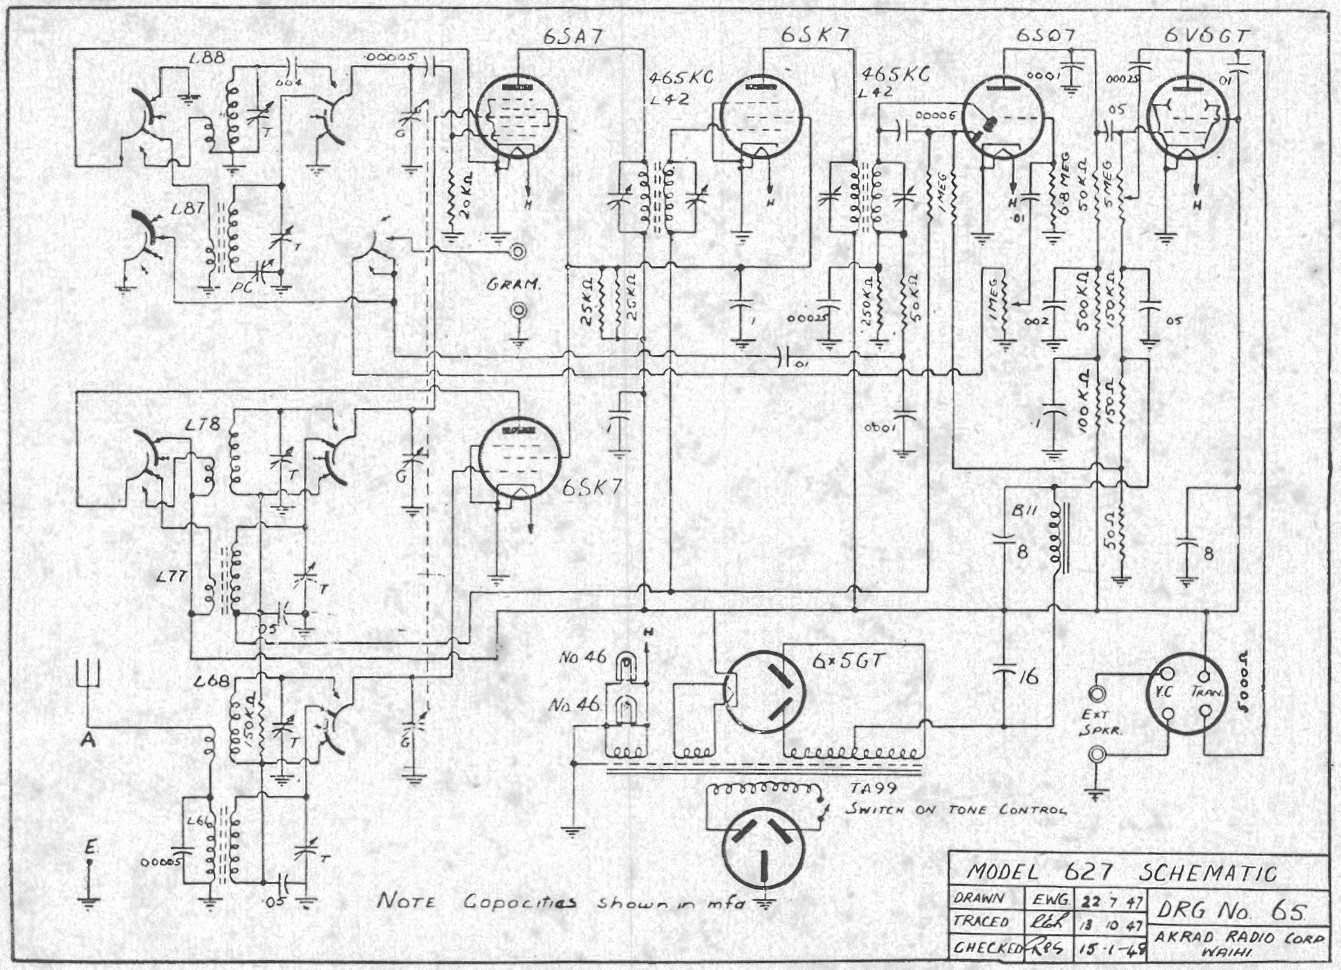 1947 Pacific (Post-WWII) model 627 Schematic - Regent and Pacific